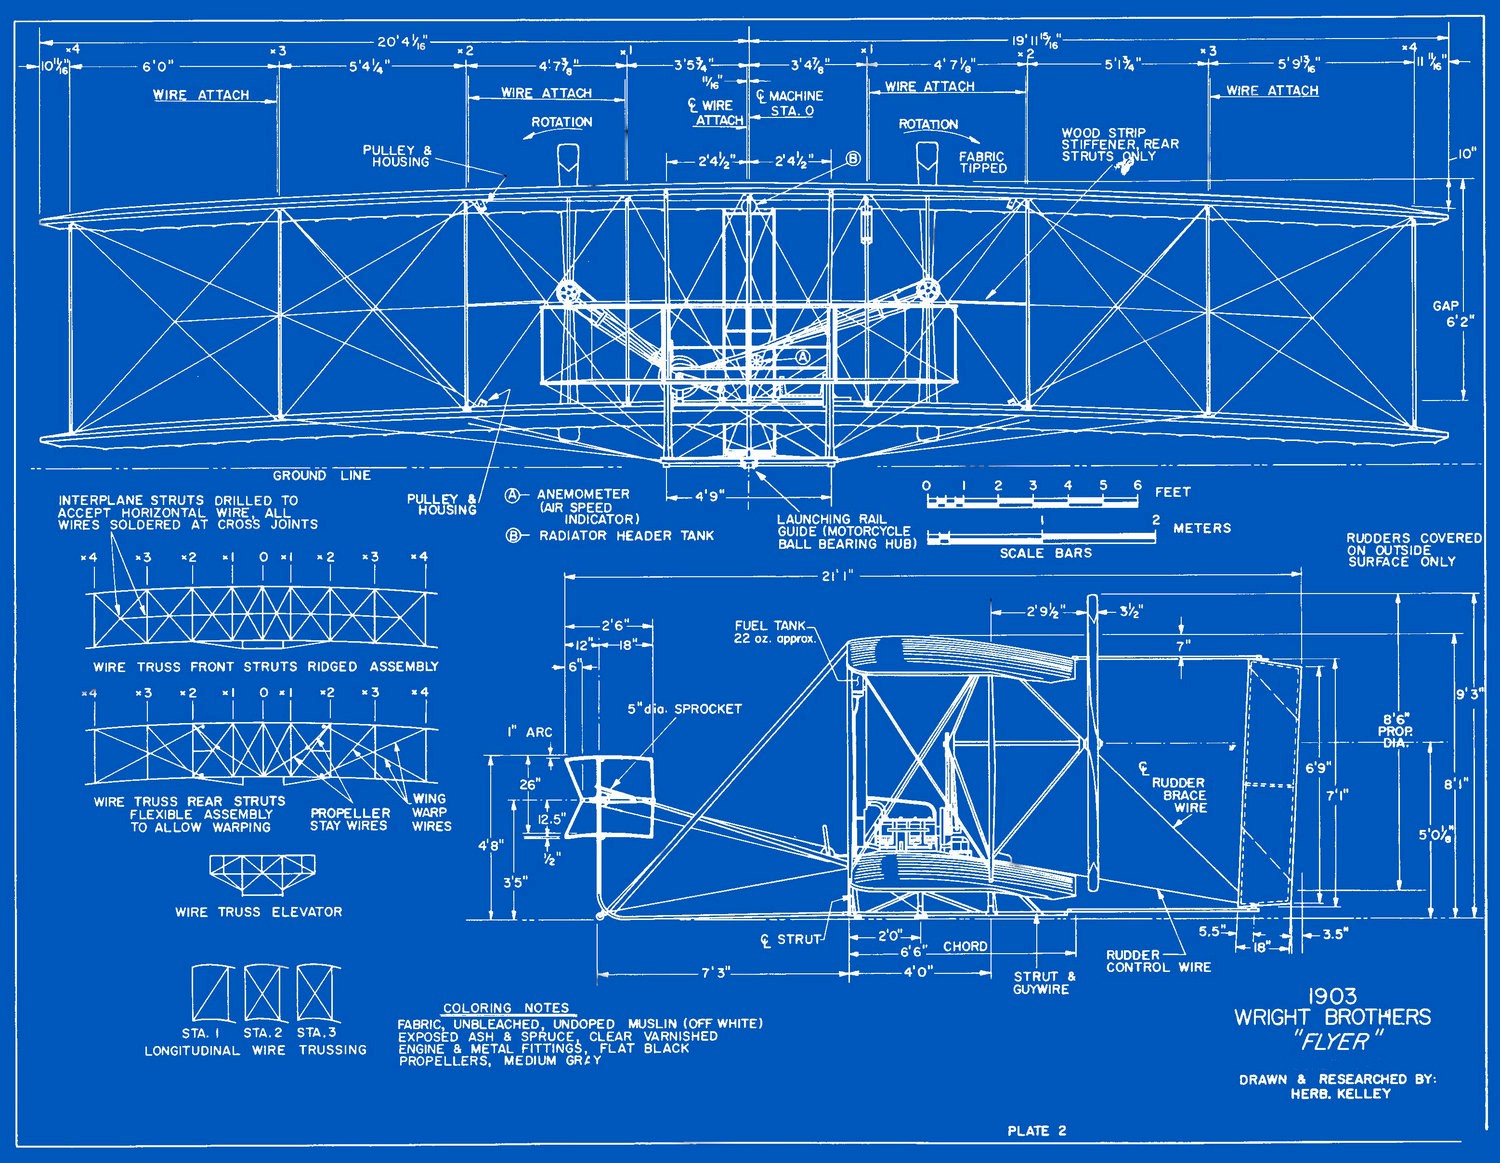 hight resolution of measured drawings of the 1903 wright flyer plate 2 front and side views